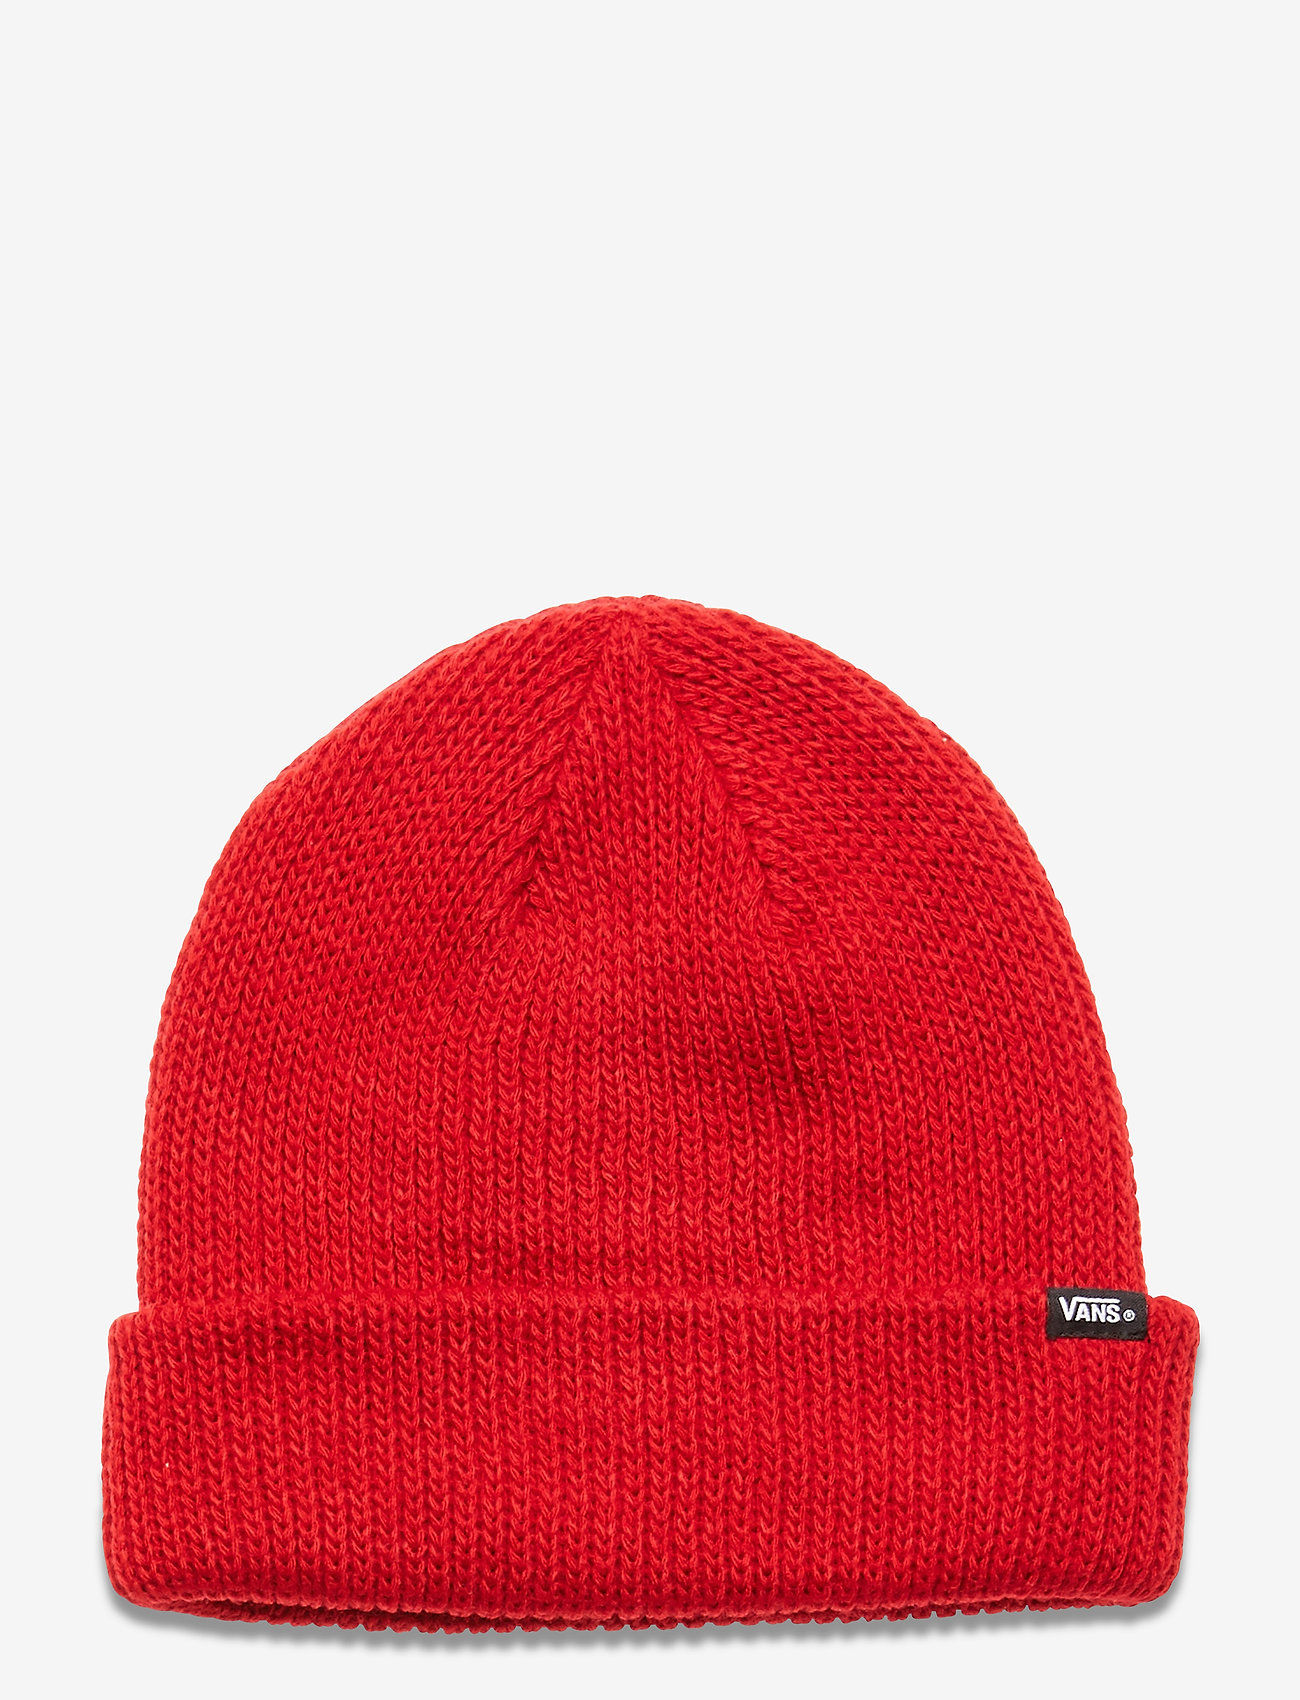 VANS - CORE BASICS BEANIE BOYS - mützen - chili pepper - 0